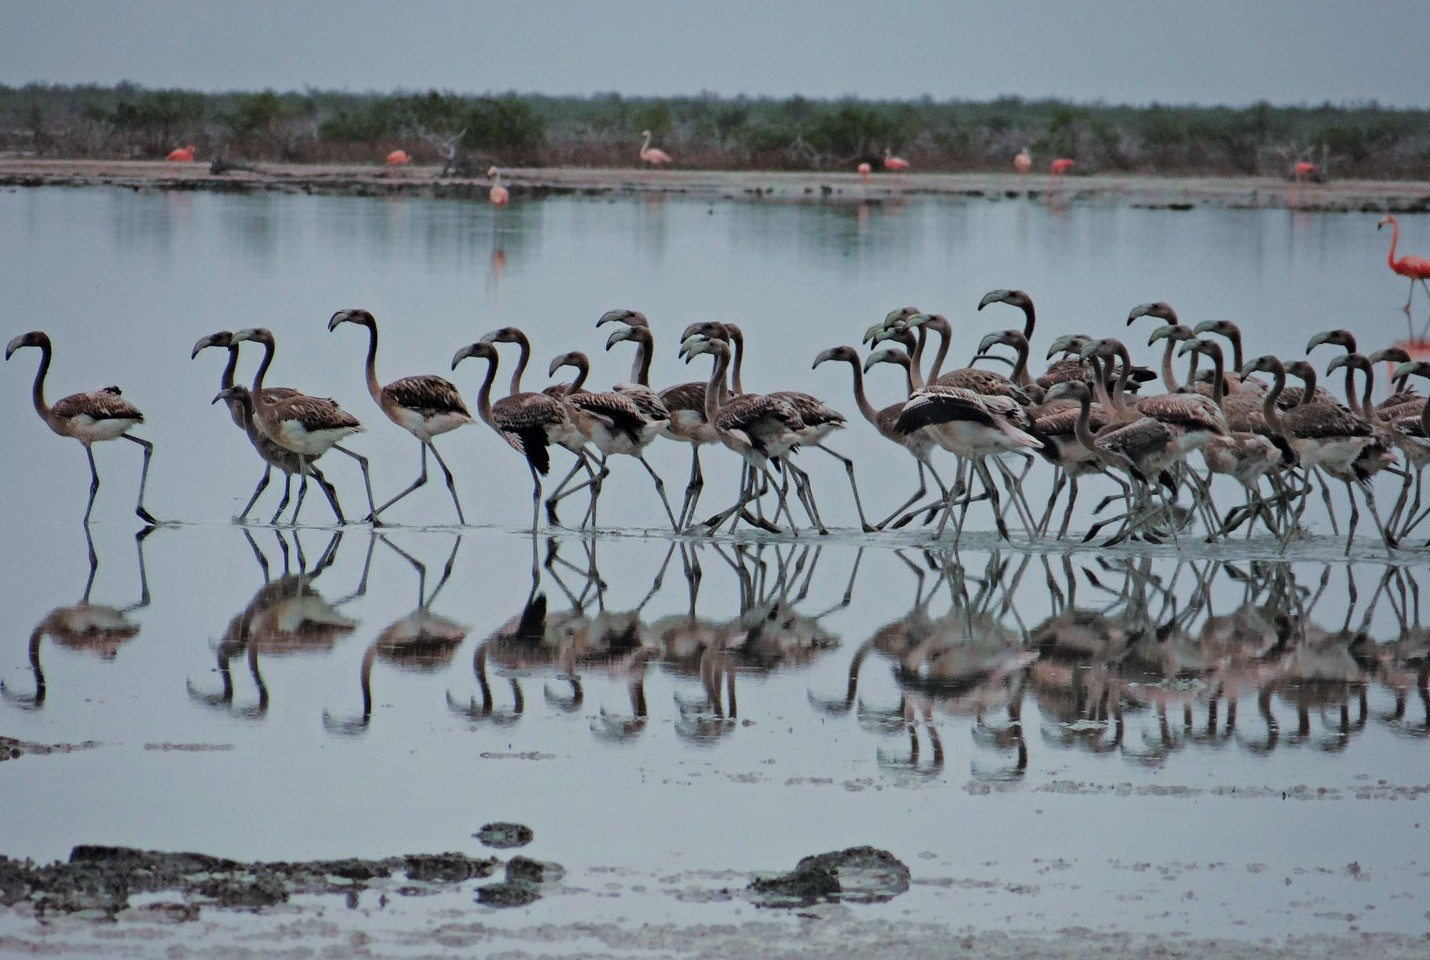 Juvenile Flamingos at Inagua National Park. Photo: Melissa Maura